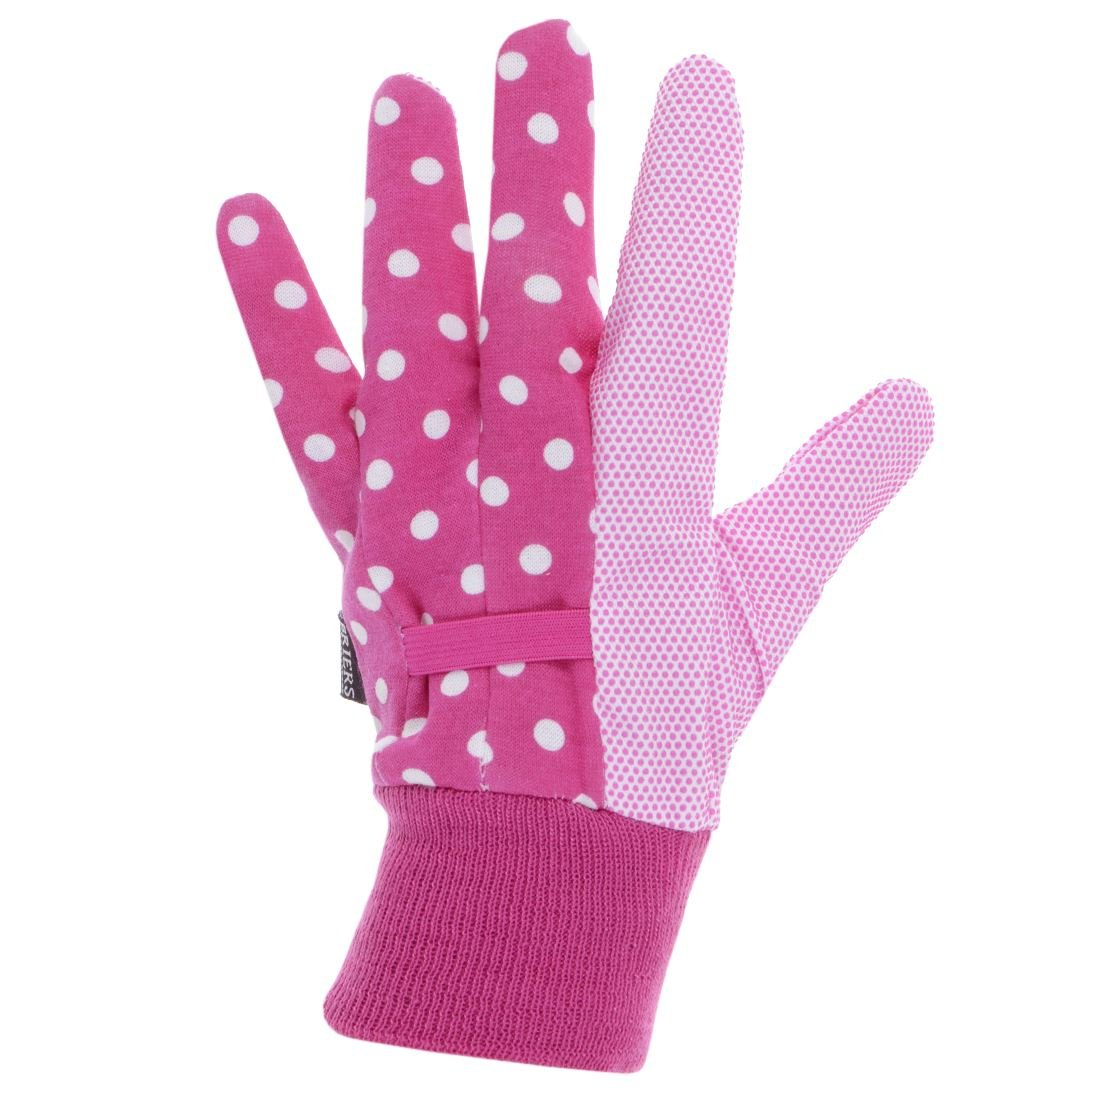 Briers Water Resistant Gardening Gloves Home Garden DIY Ladies Accessory Pink Polka Dot Size Medium